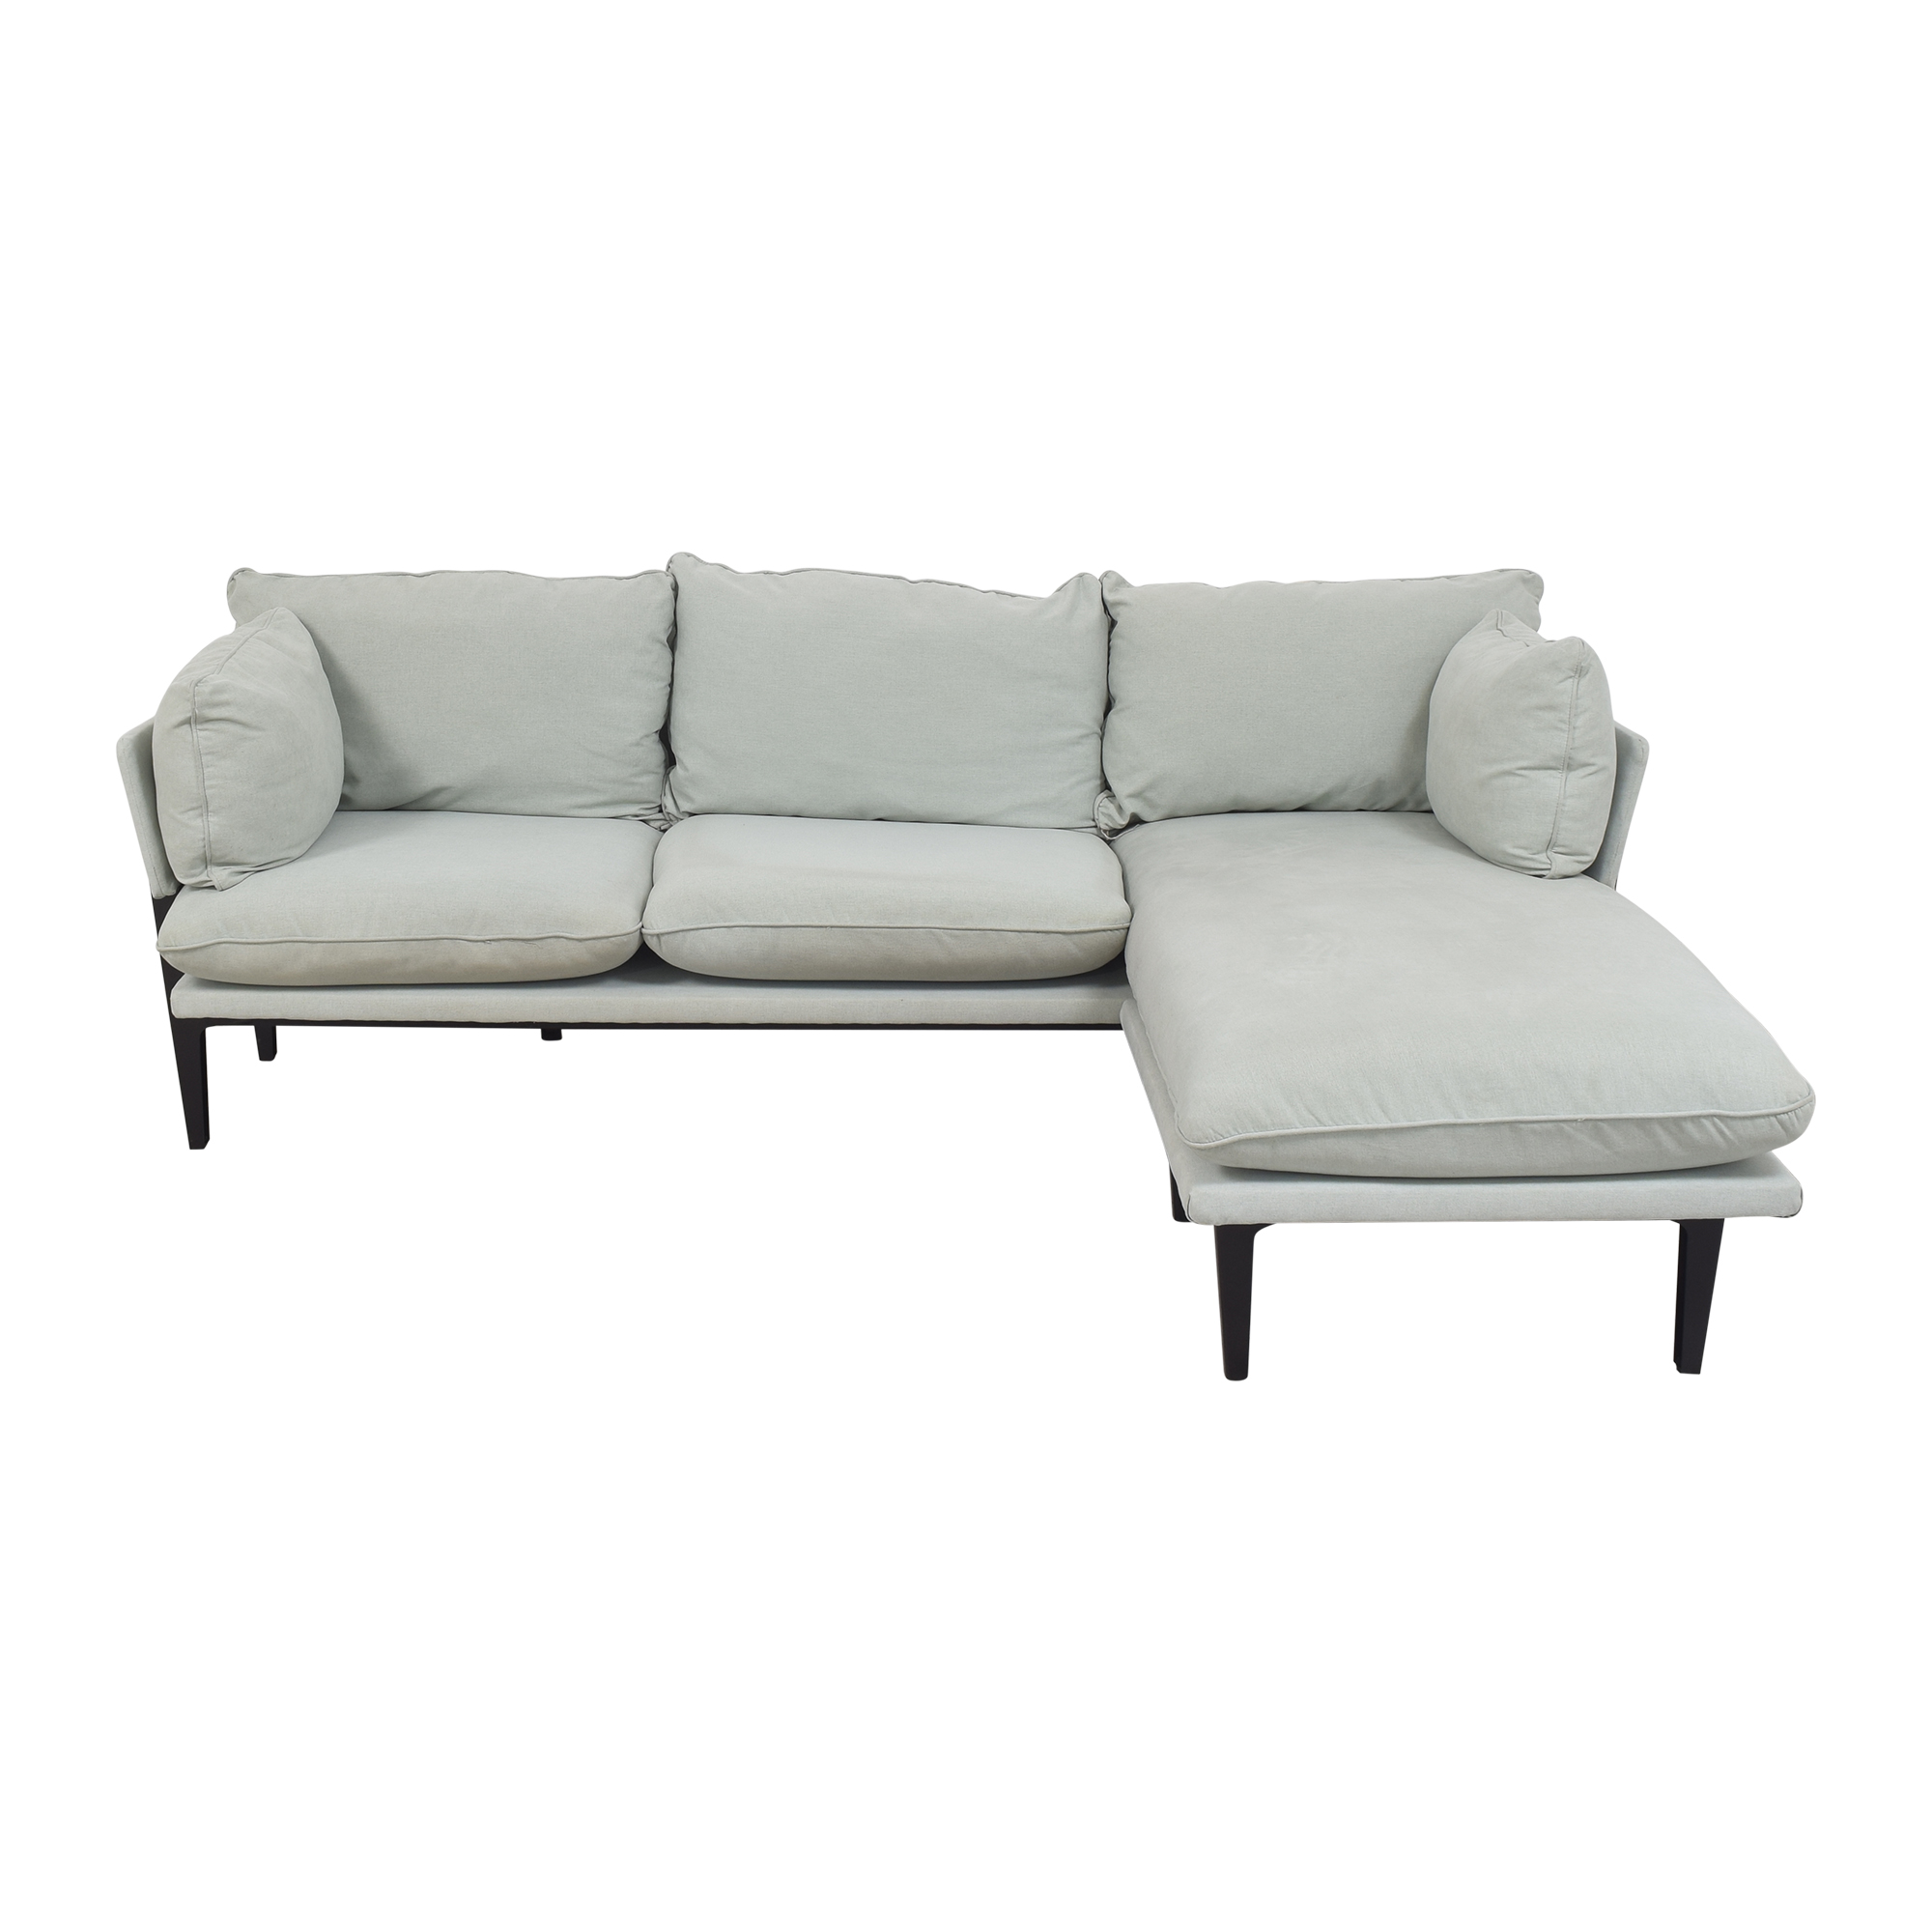 Floyd Floyd The Sofa Three Seater and Chaise coupon